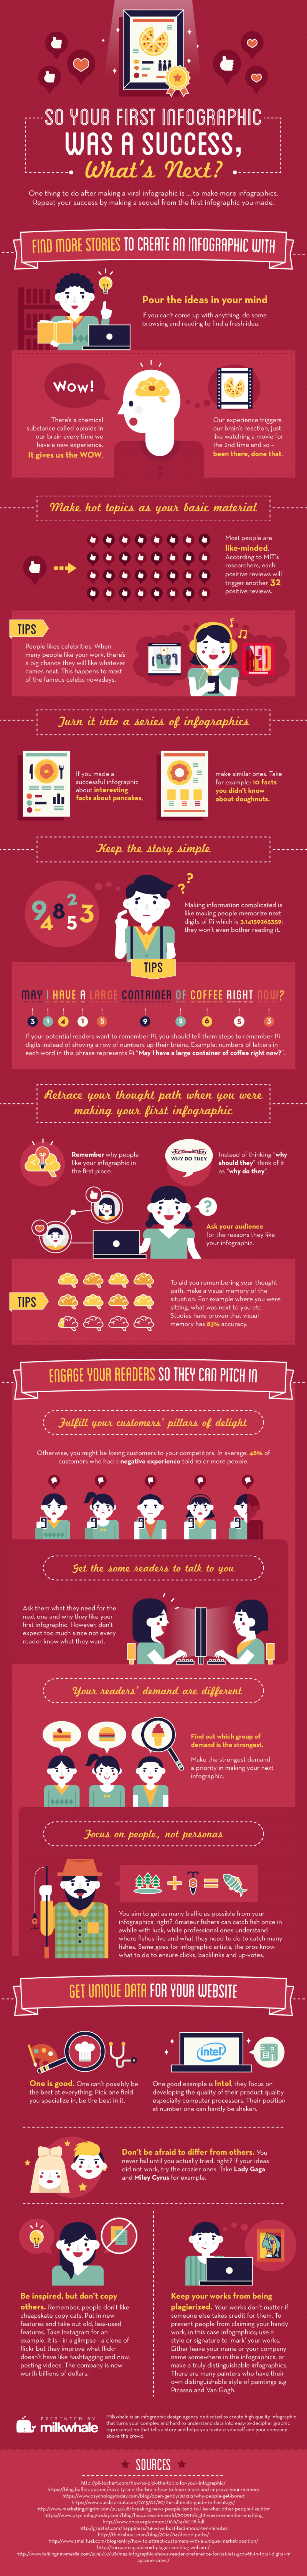 So Your First Infographic Was a Success, What's Next? Infographic